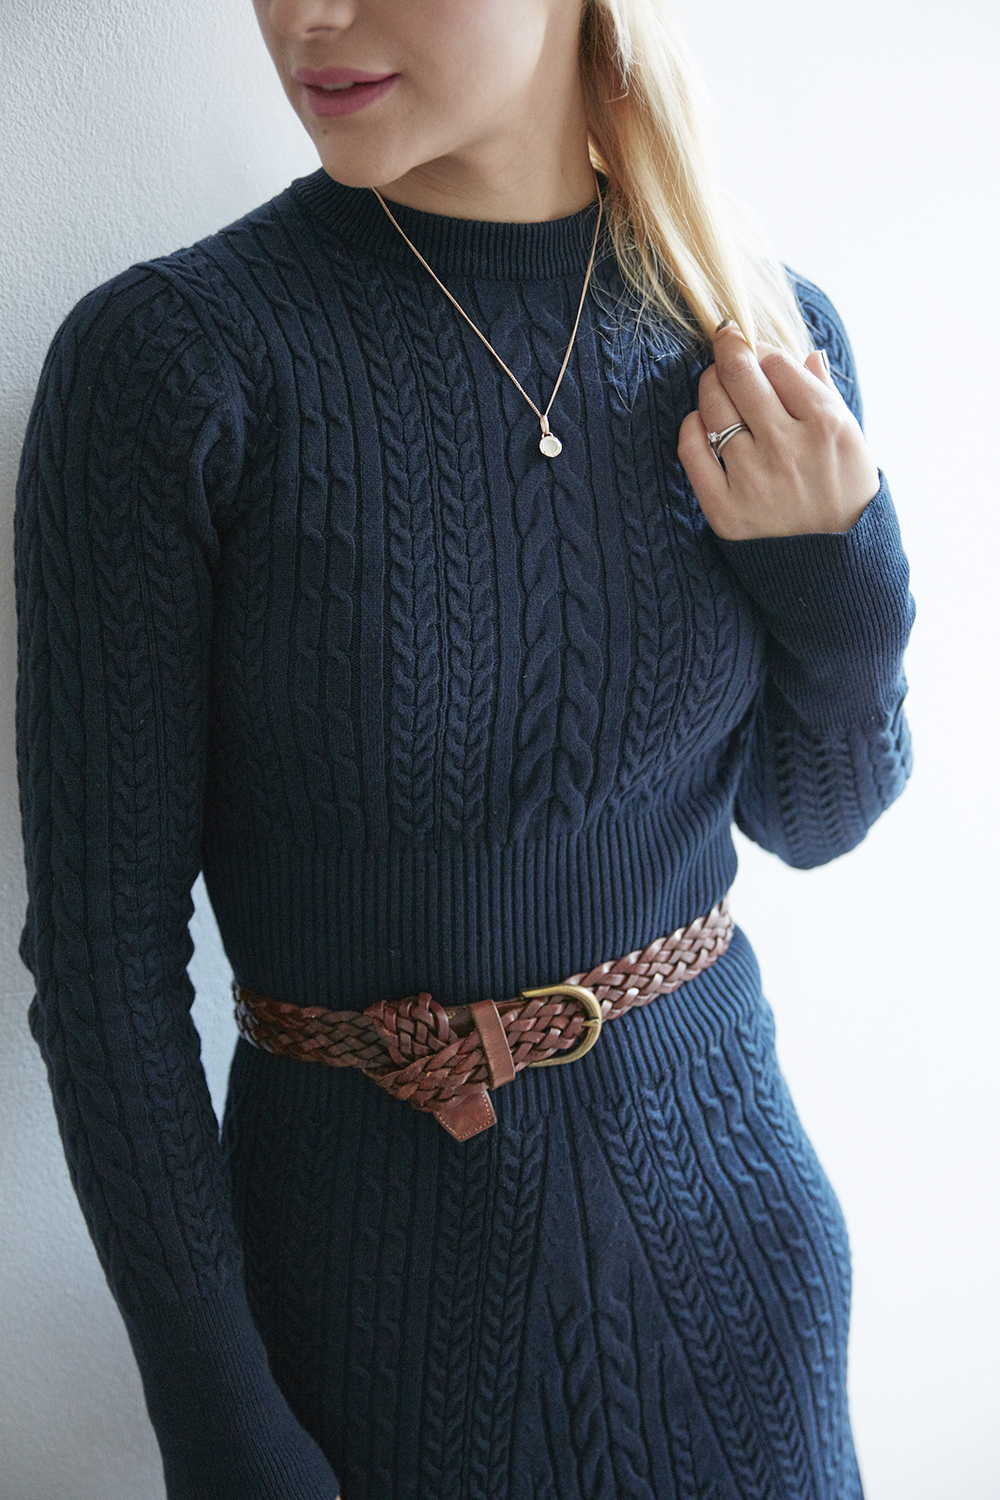 Cable knit jumper dress   Warehouse   House of Fraser   Cocomamastyle